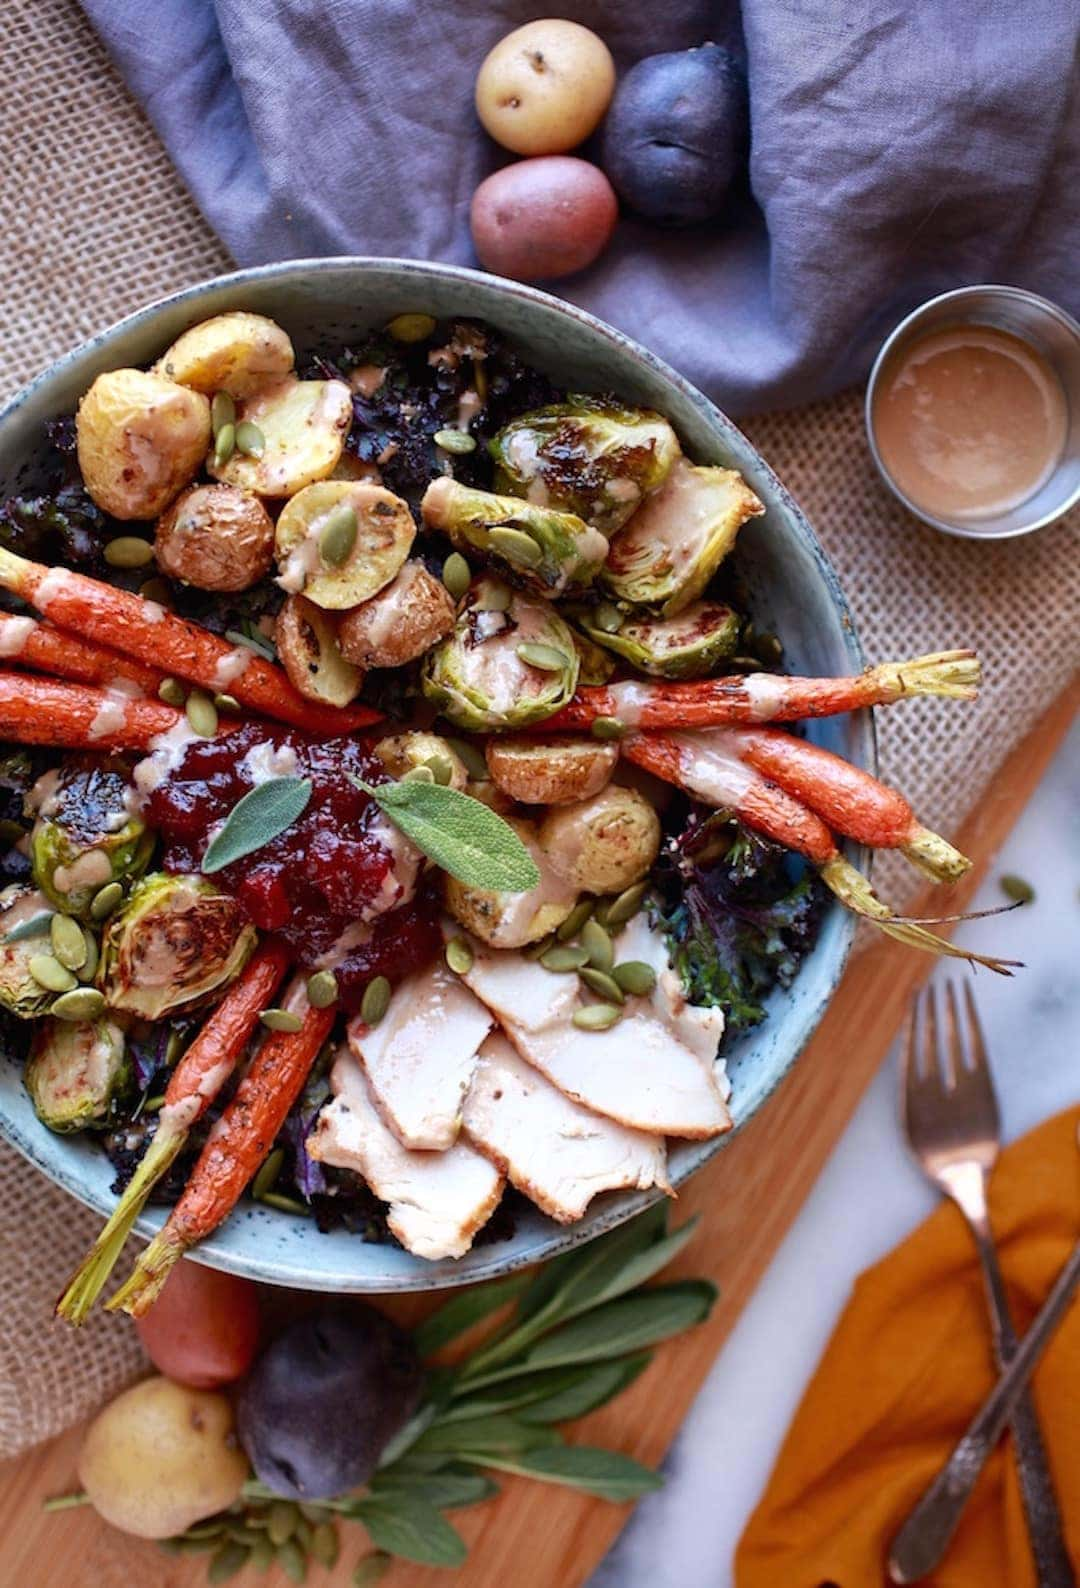 10 Terrific & Simple Healthy Fall Recipes - Thanksgiving Abundance Bowl